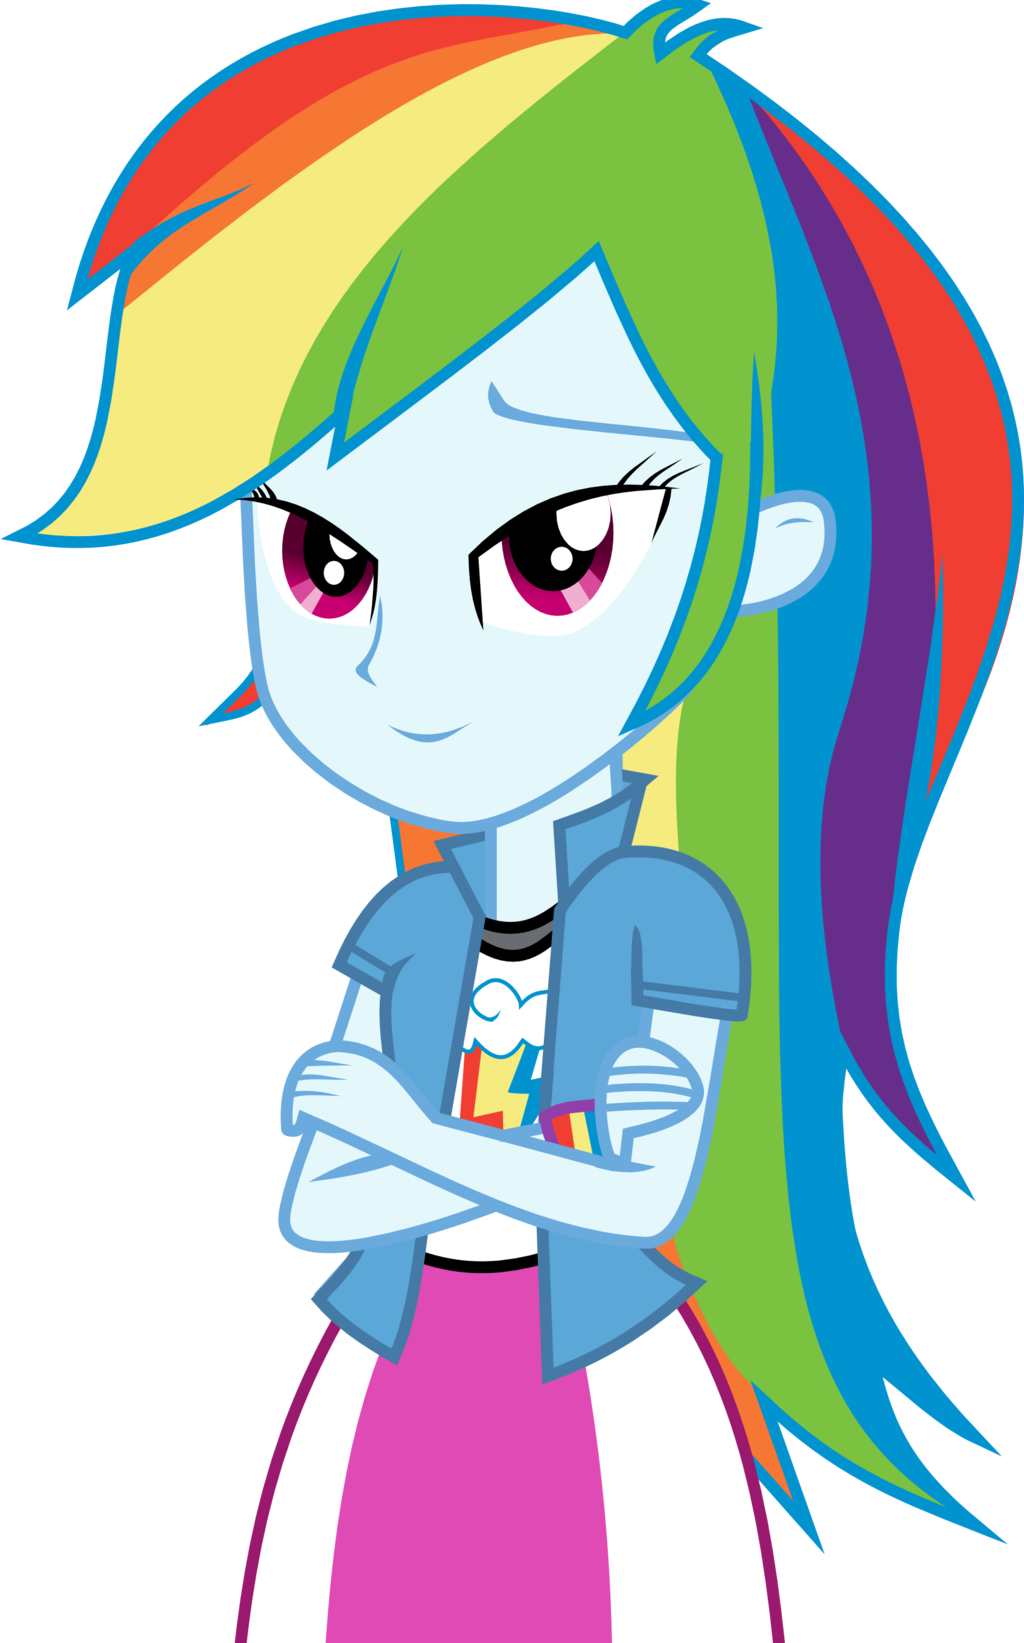 Rainbow Dash Equestria Girl Drawing at GetDrawings.com | Free for ...